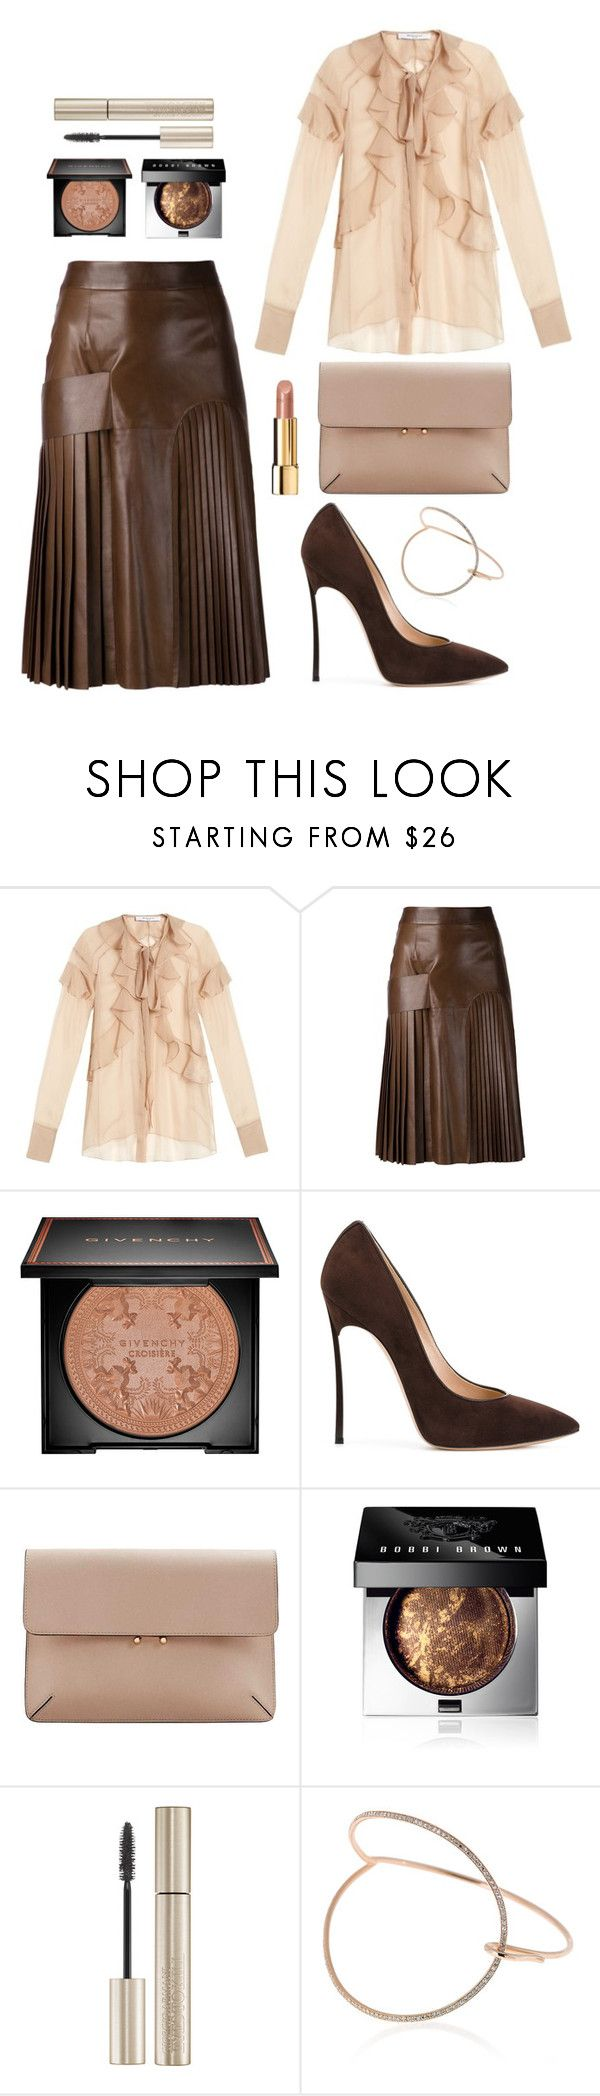 """""""Givenchy"""" by petra0710 ❤ liked on Polyvore featuring Givenchy, Casadei, MANGO, Bobbi Brown Cosmetics, Giorgio Armani, Selim Mouzannar and Chanel"""